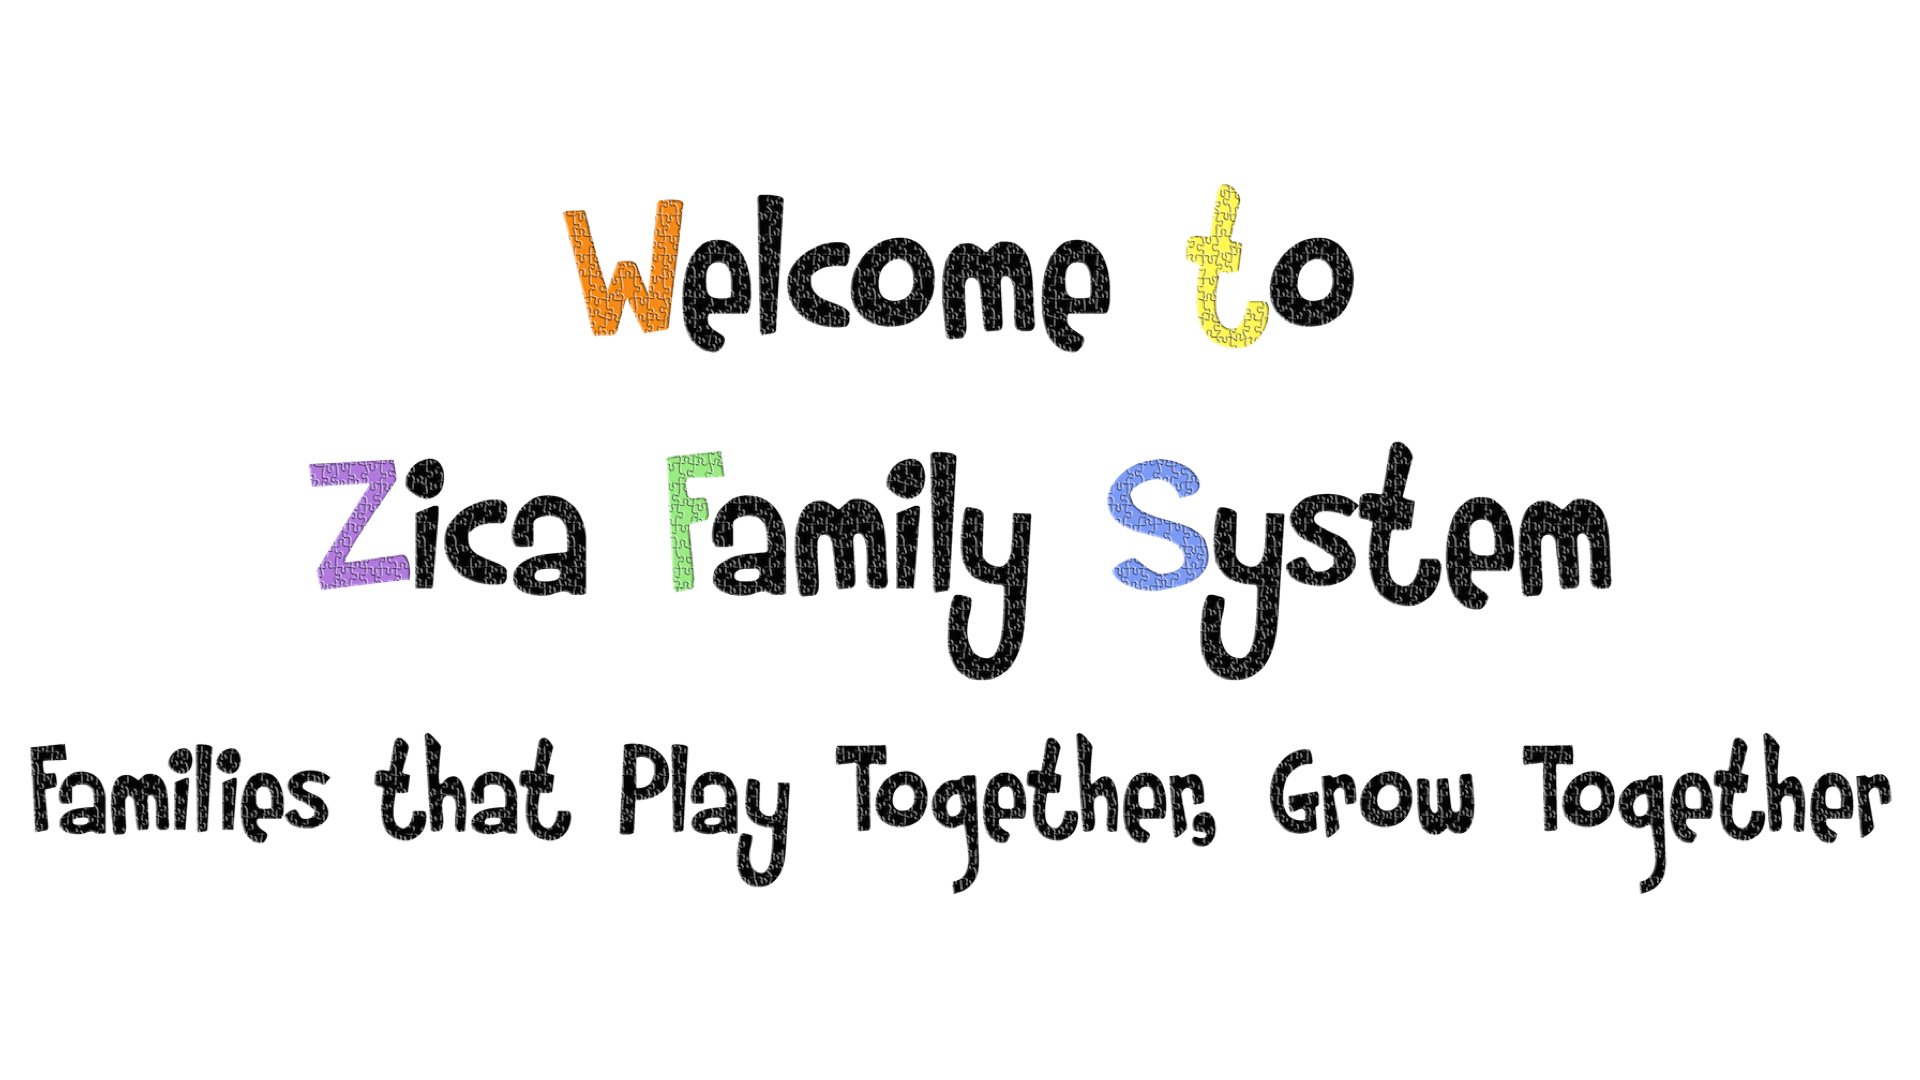 Families that Play Together, Grow Together